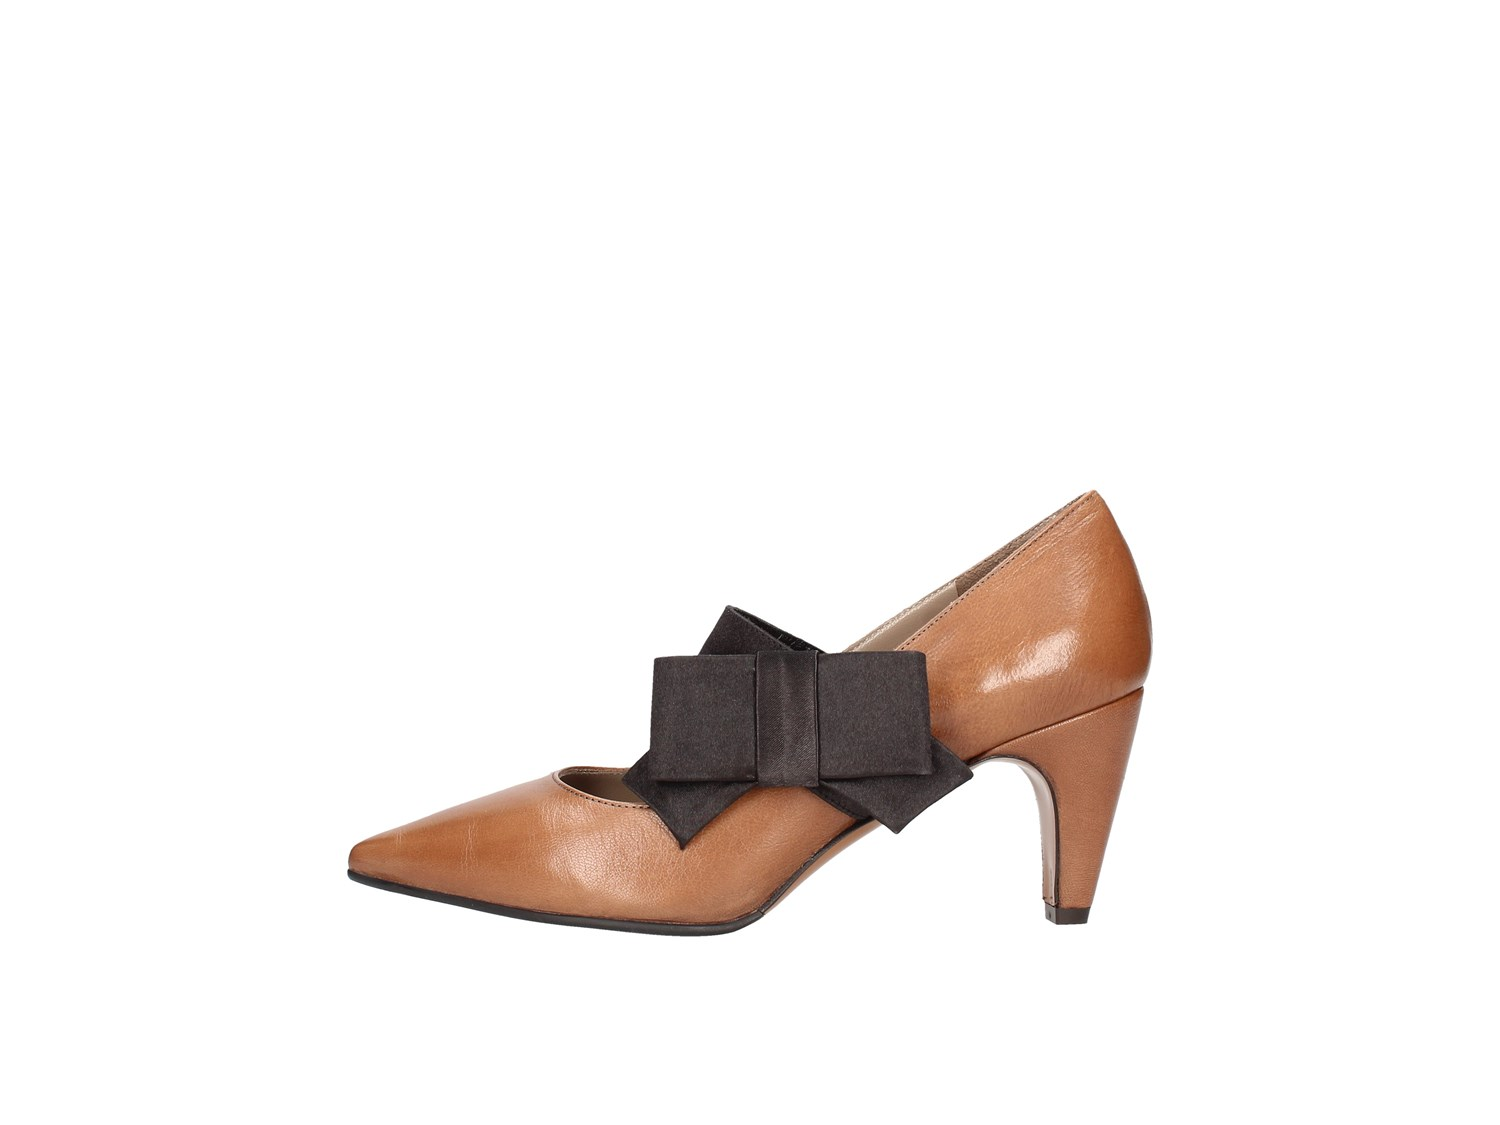 Silvia Rossini 3500 Leather Shoes Women Heels'